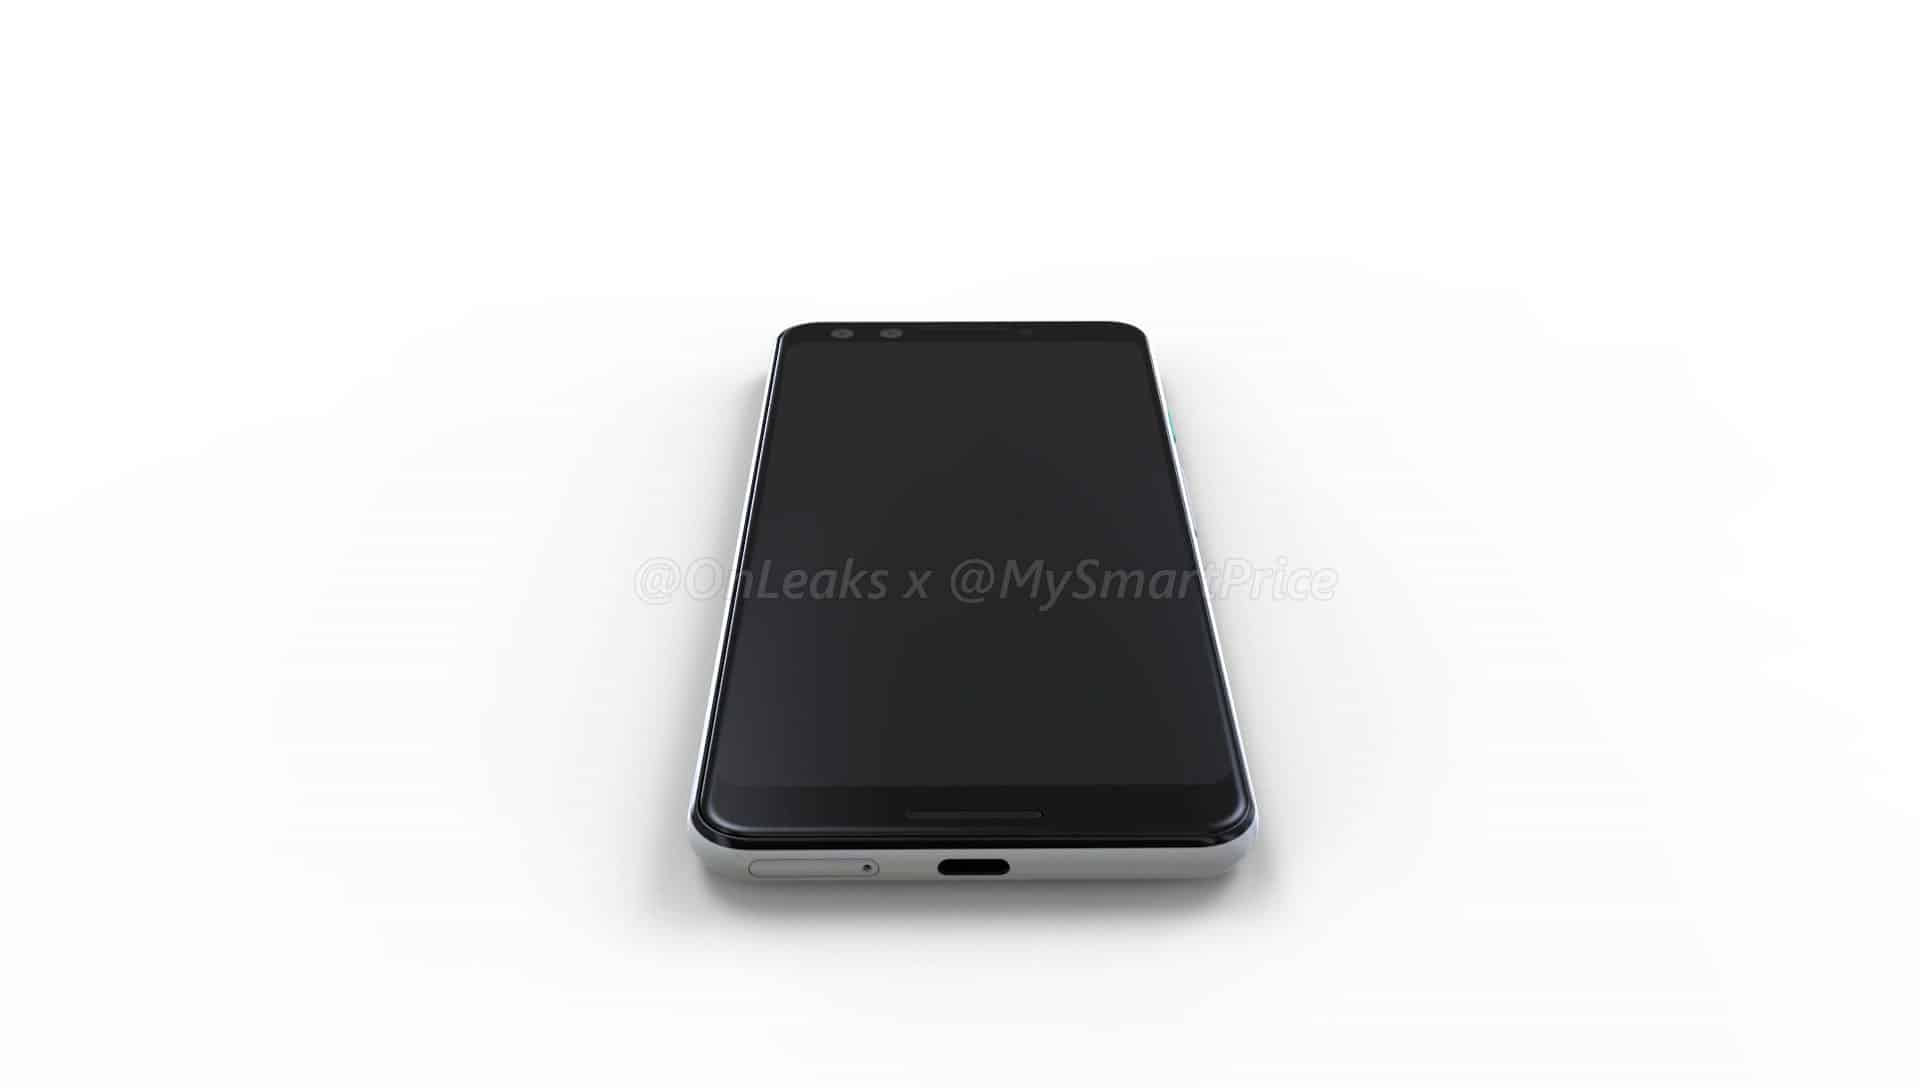 Pixel 3/ Pixel 3 XL leak with modern displays